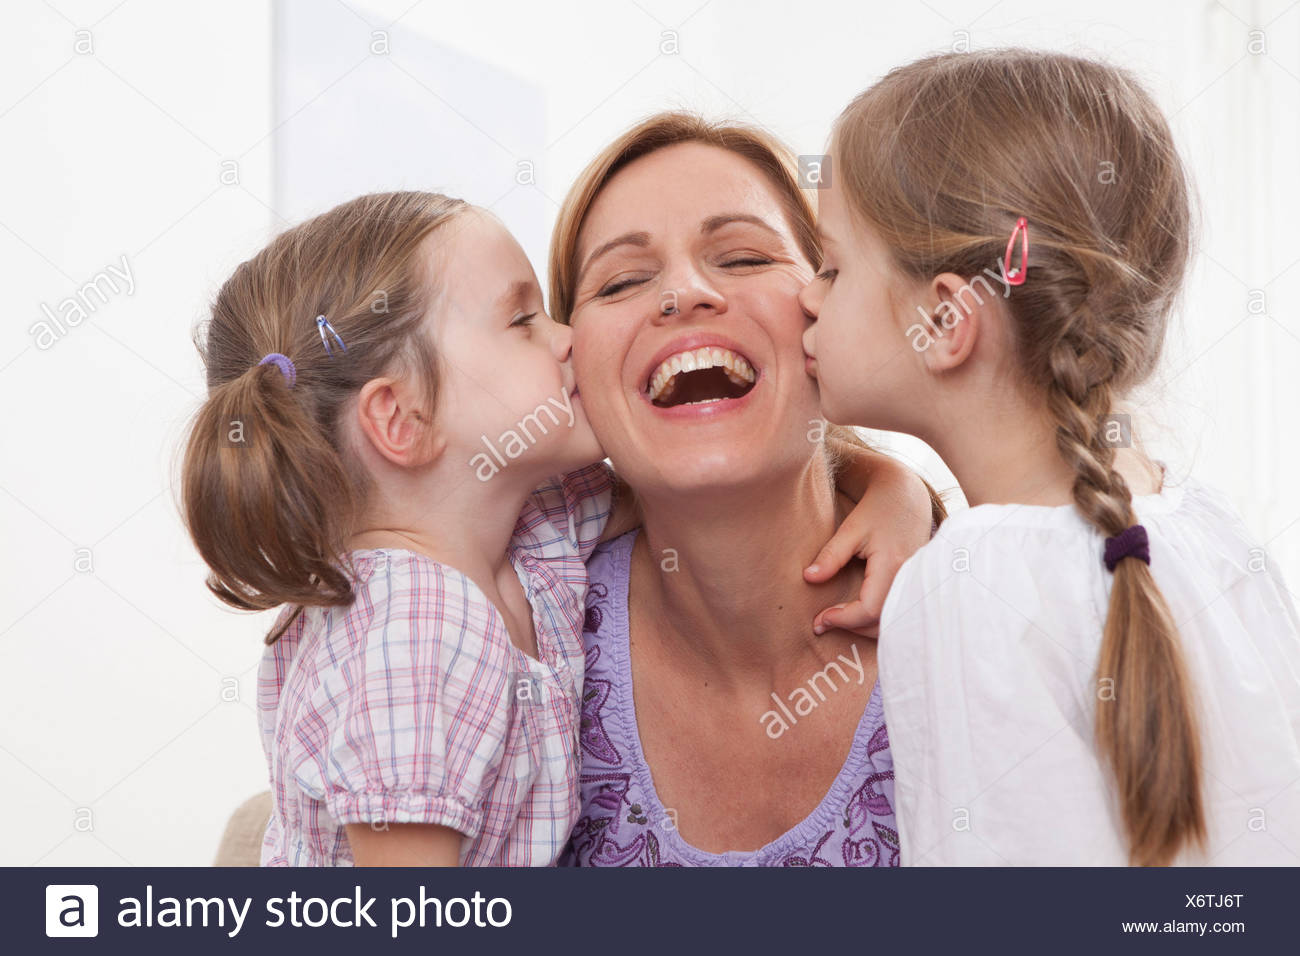 Germany, Munich, Girls (4-7) kissing on mother's cheek Stock Photo